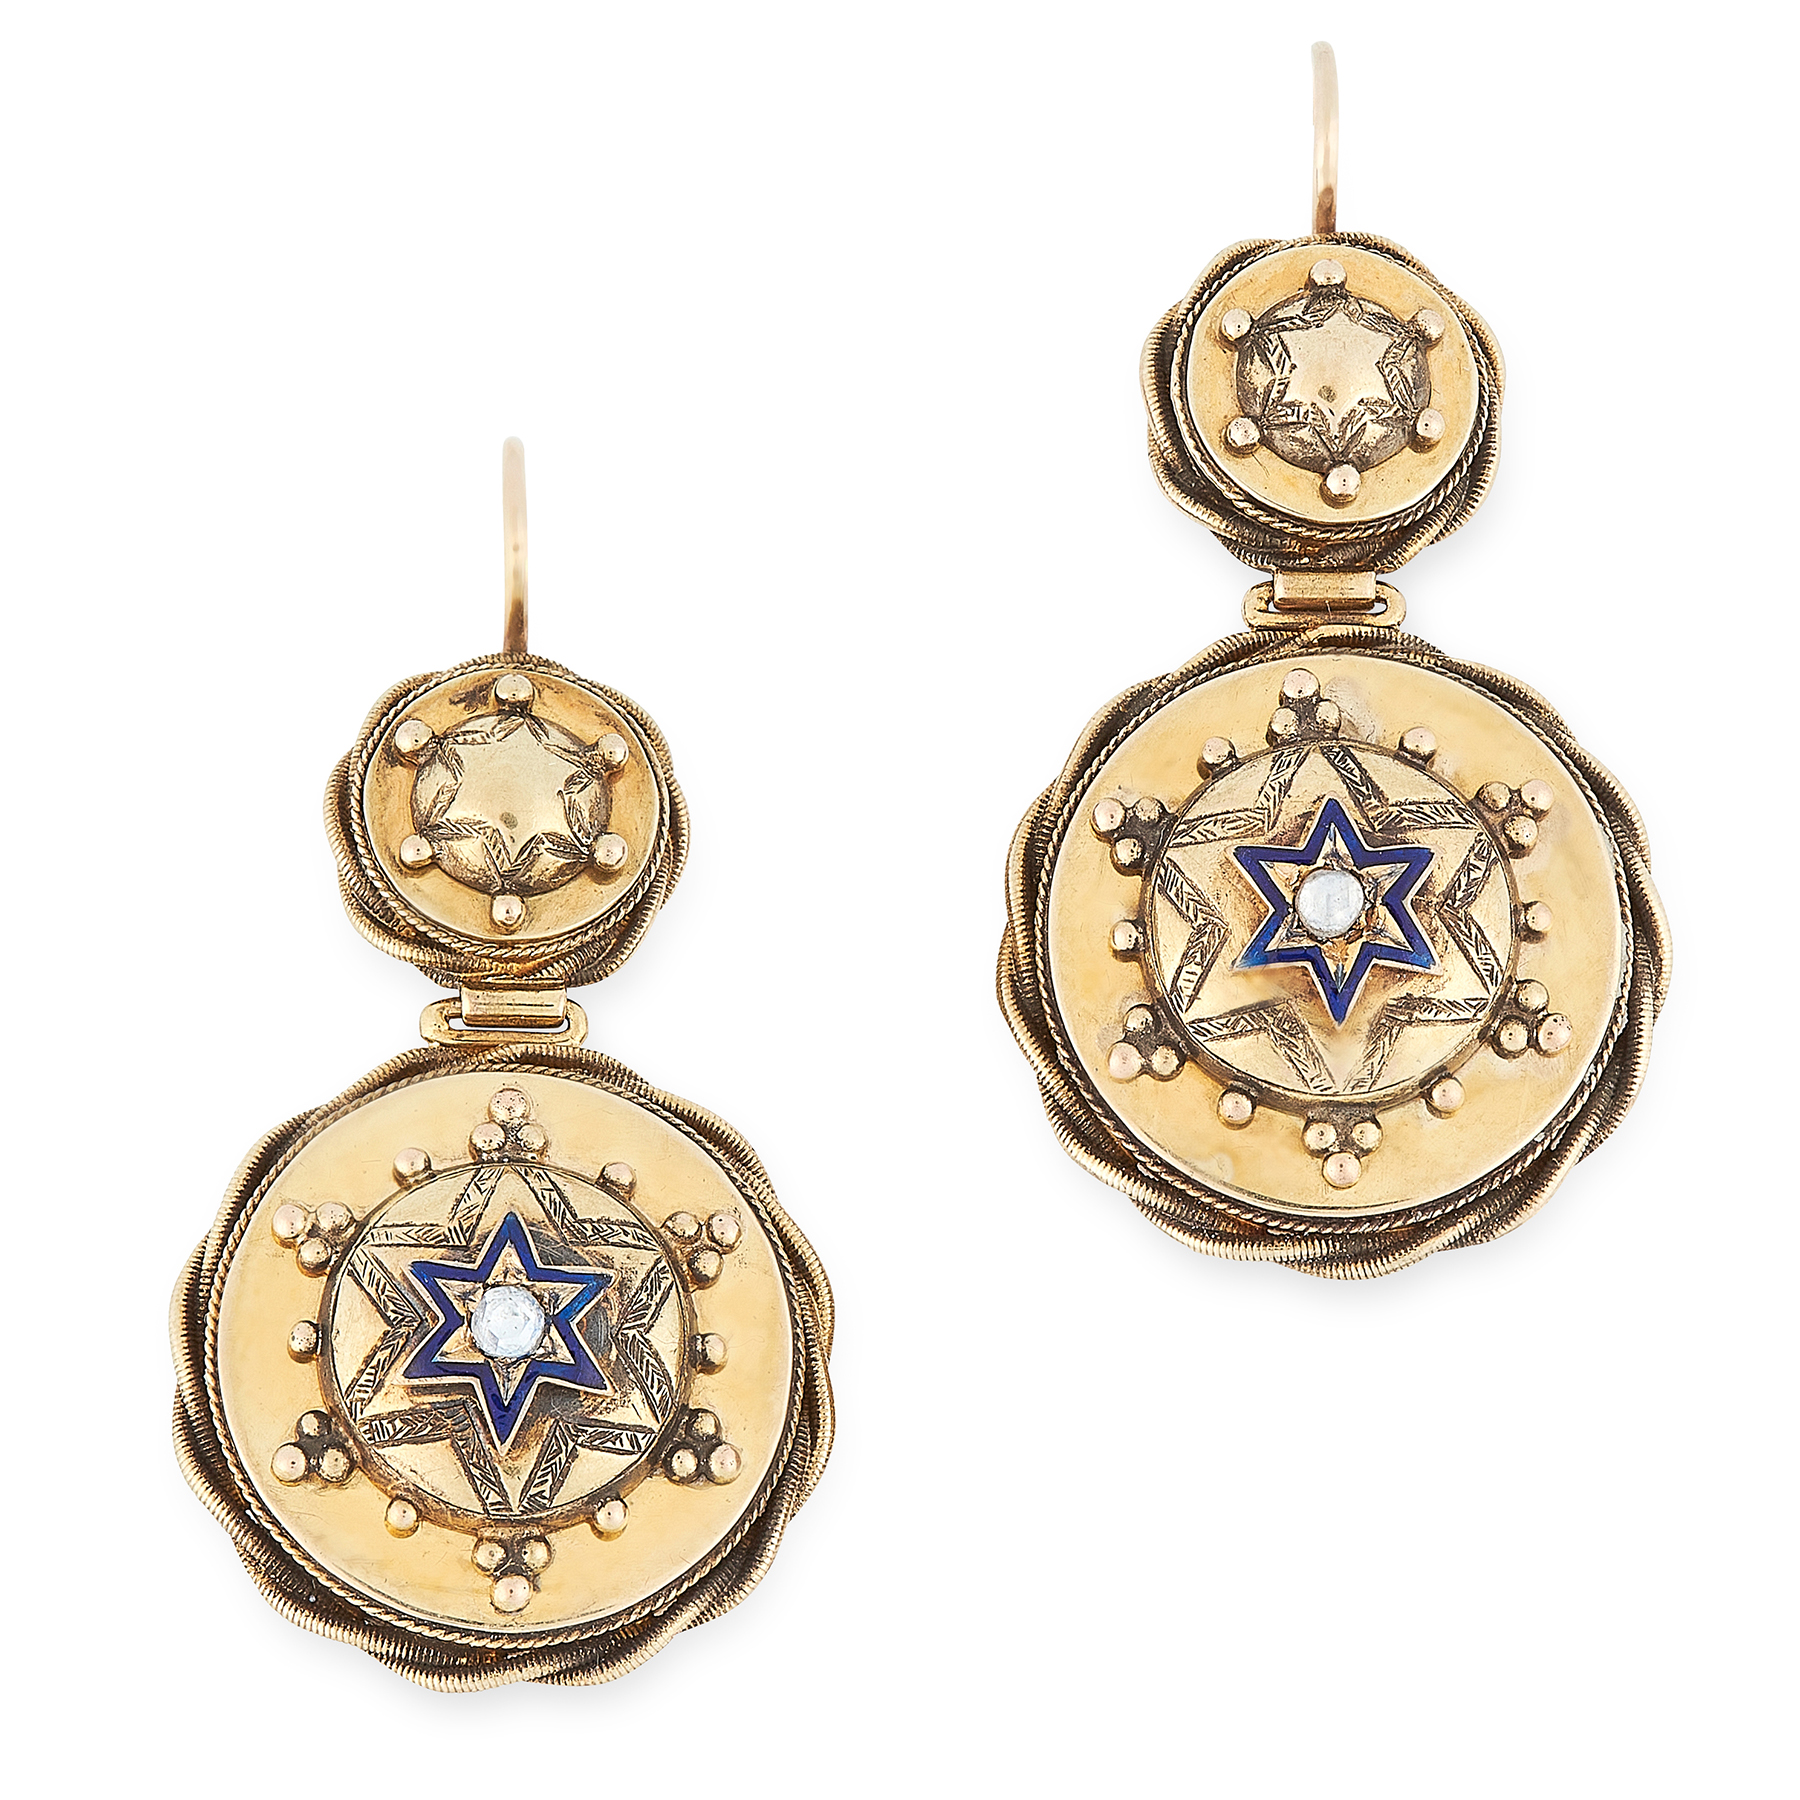 Lot 50 - AN ANTIQUE DIAMOND AND ENAMEL MOURNING BROOCH AND EARRINGS SUITE, 19TH CENTURY in yellow gold, the